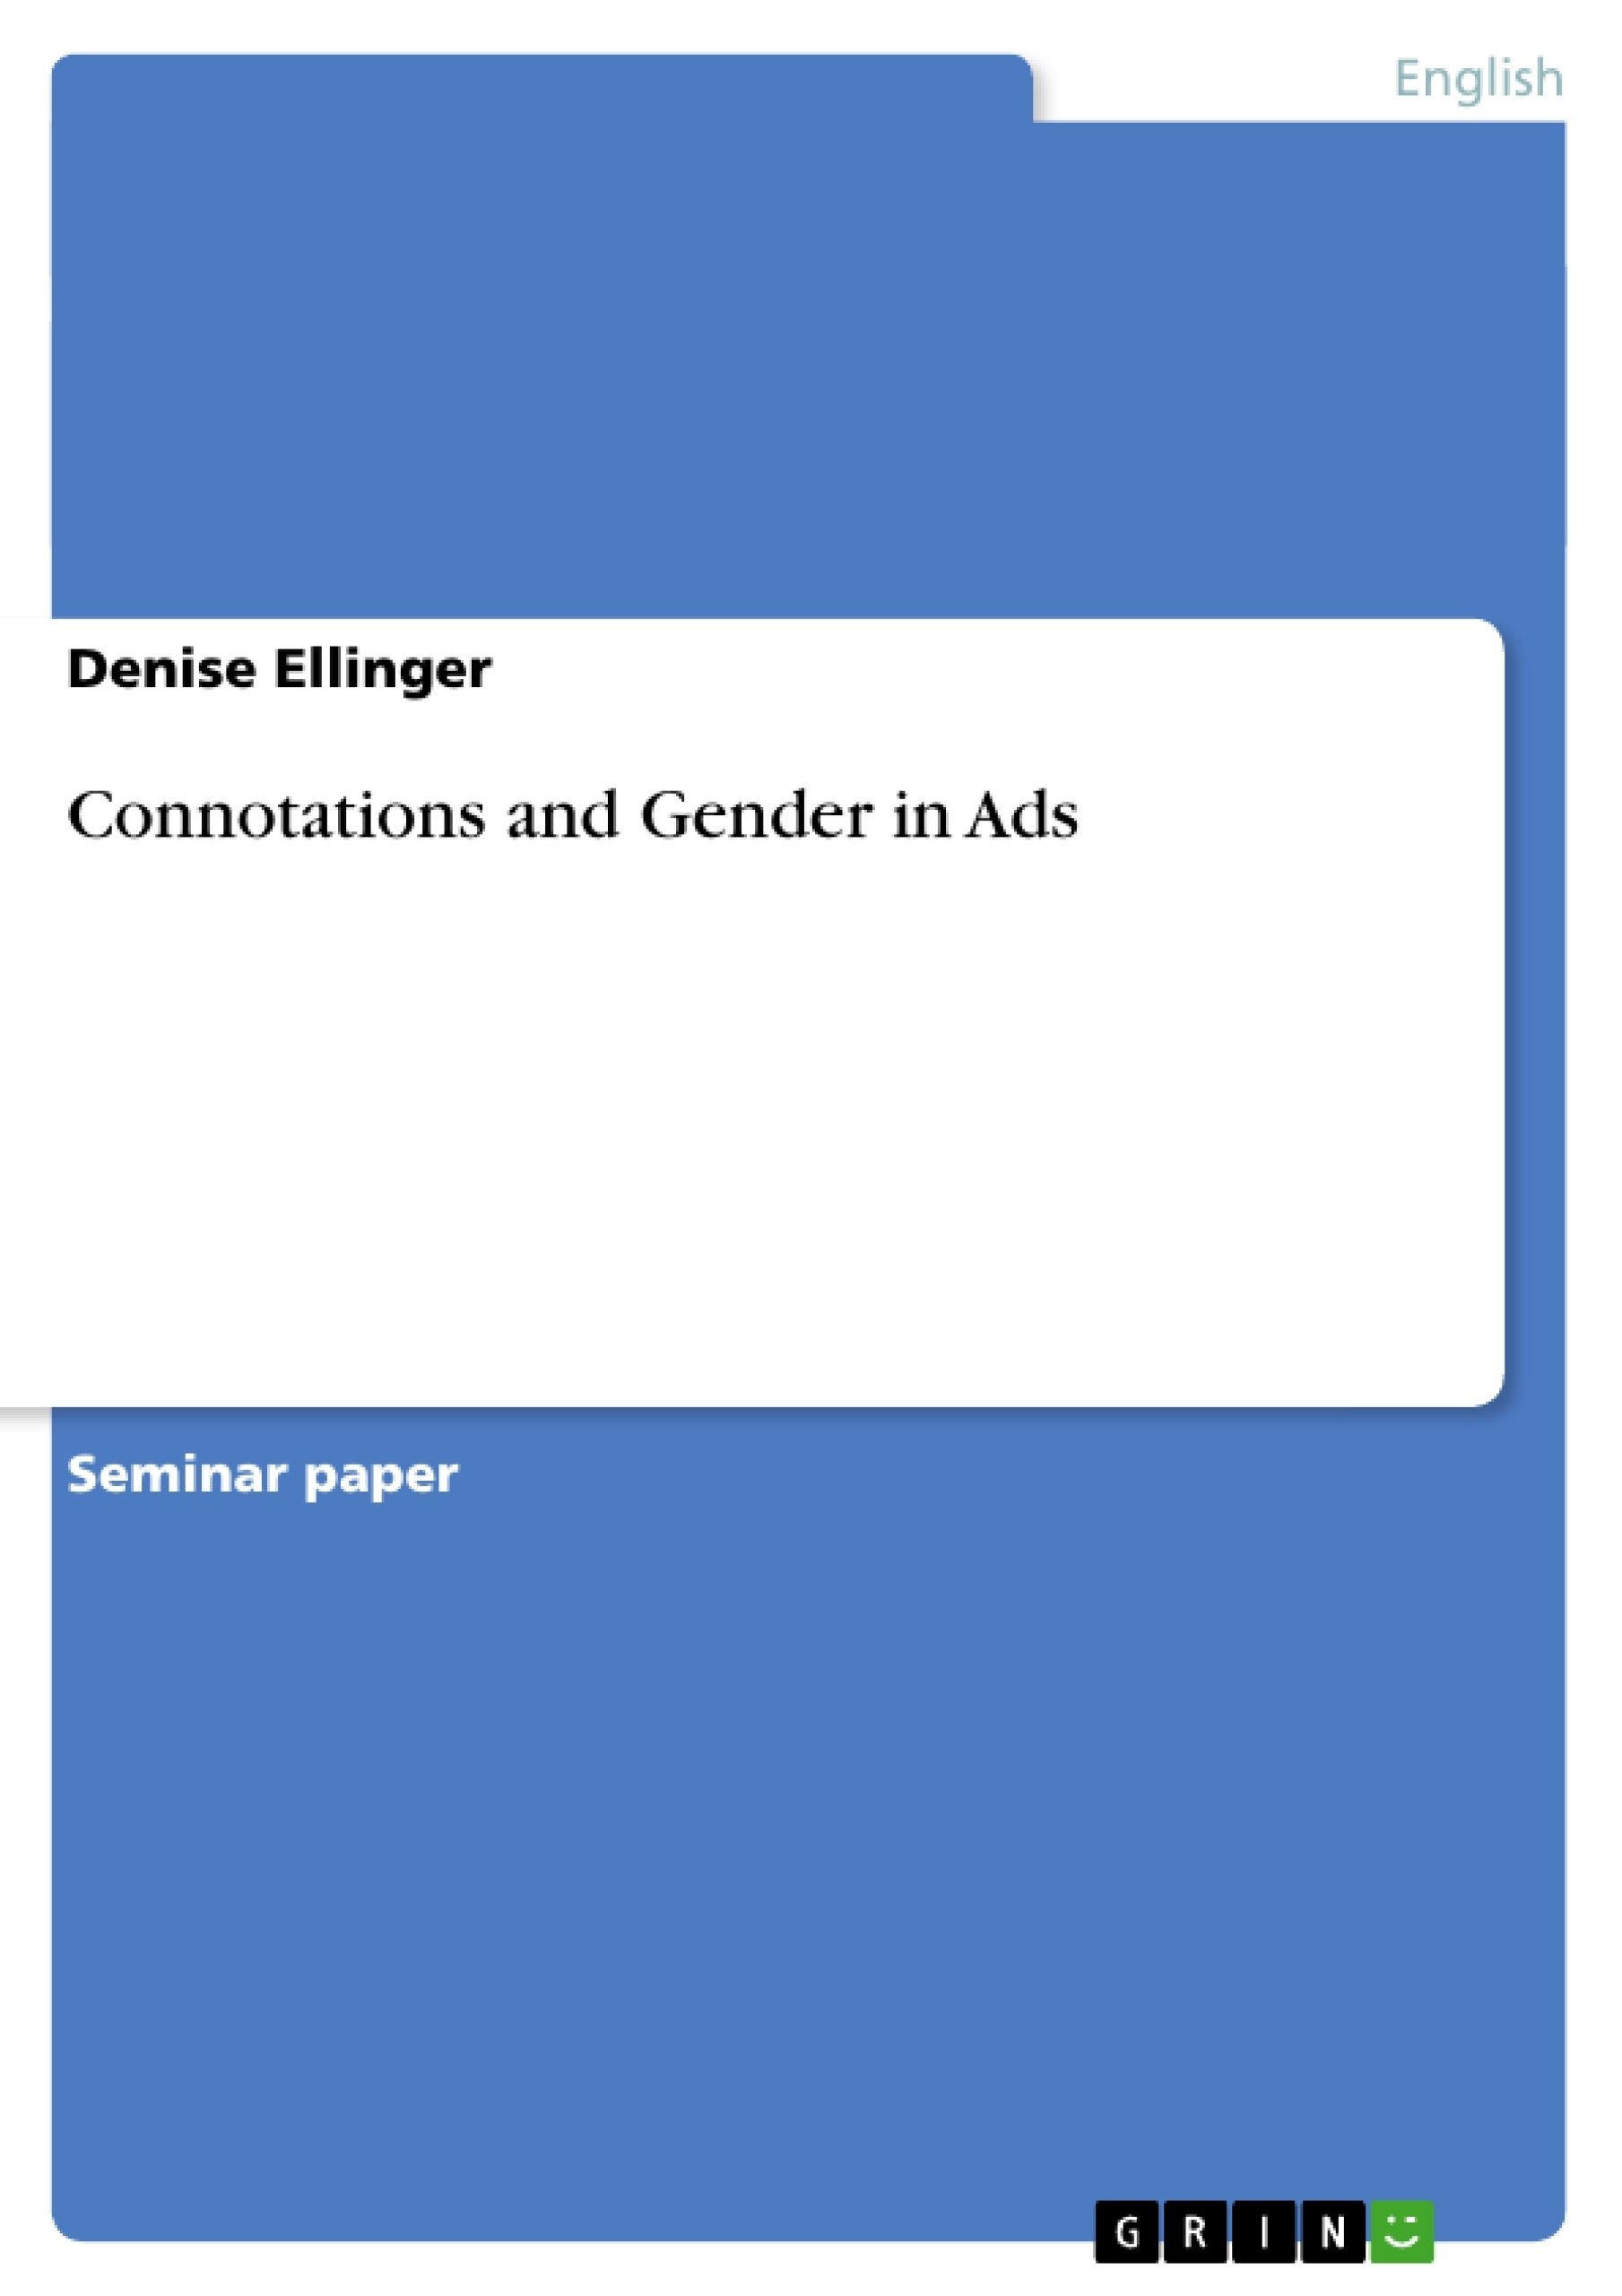 gender ads essay Read this essay on gender bias in advertising come browse our large digital warehouse of free sample essays get the knowledge you need in order to pass your classes.